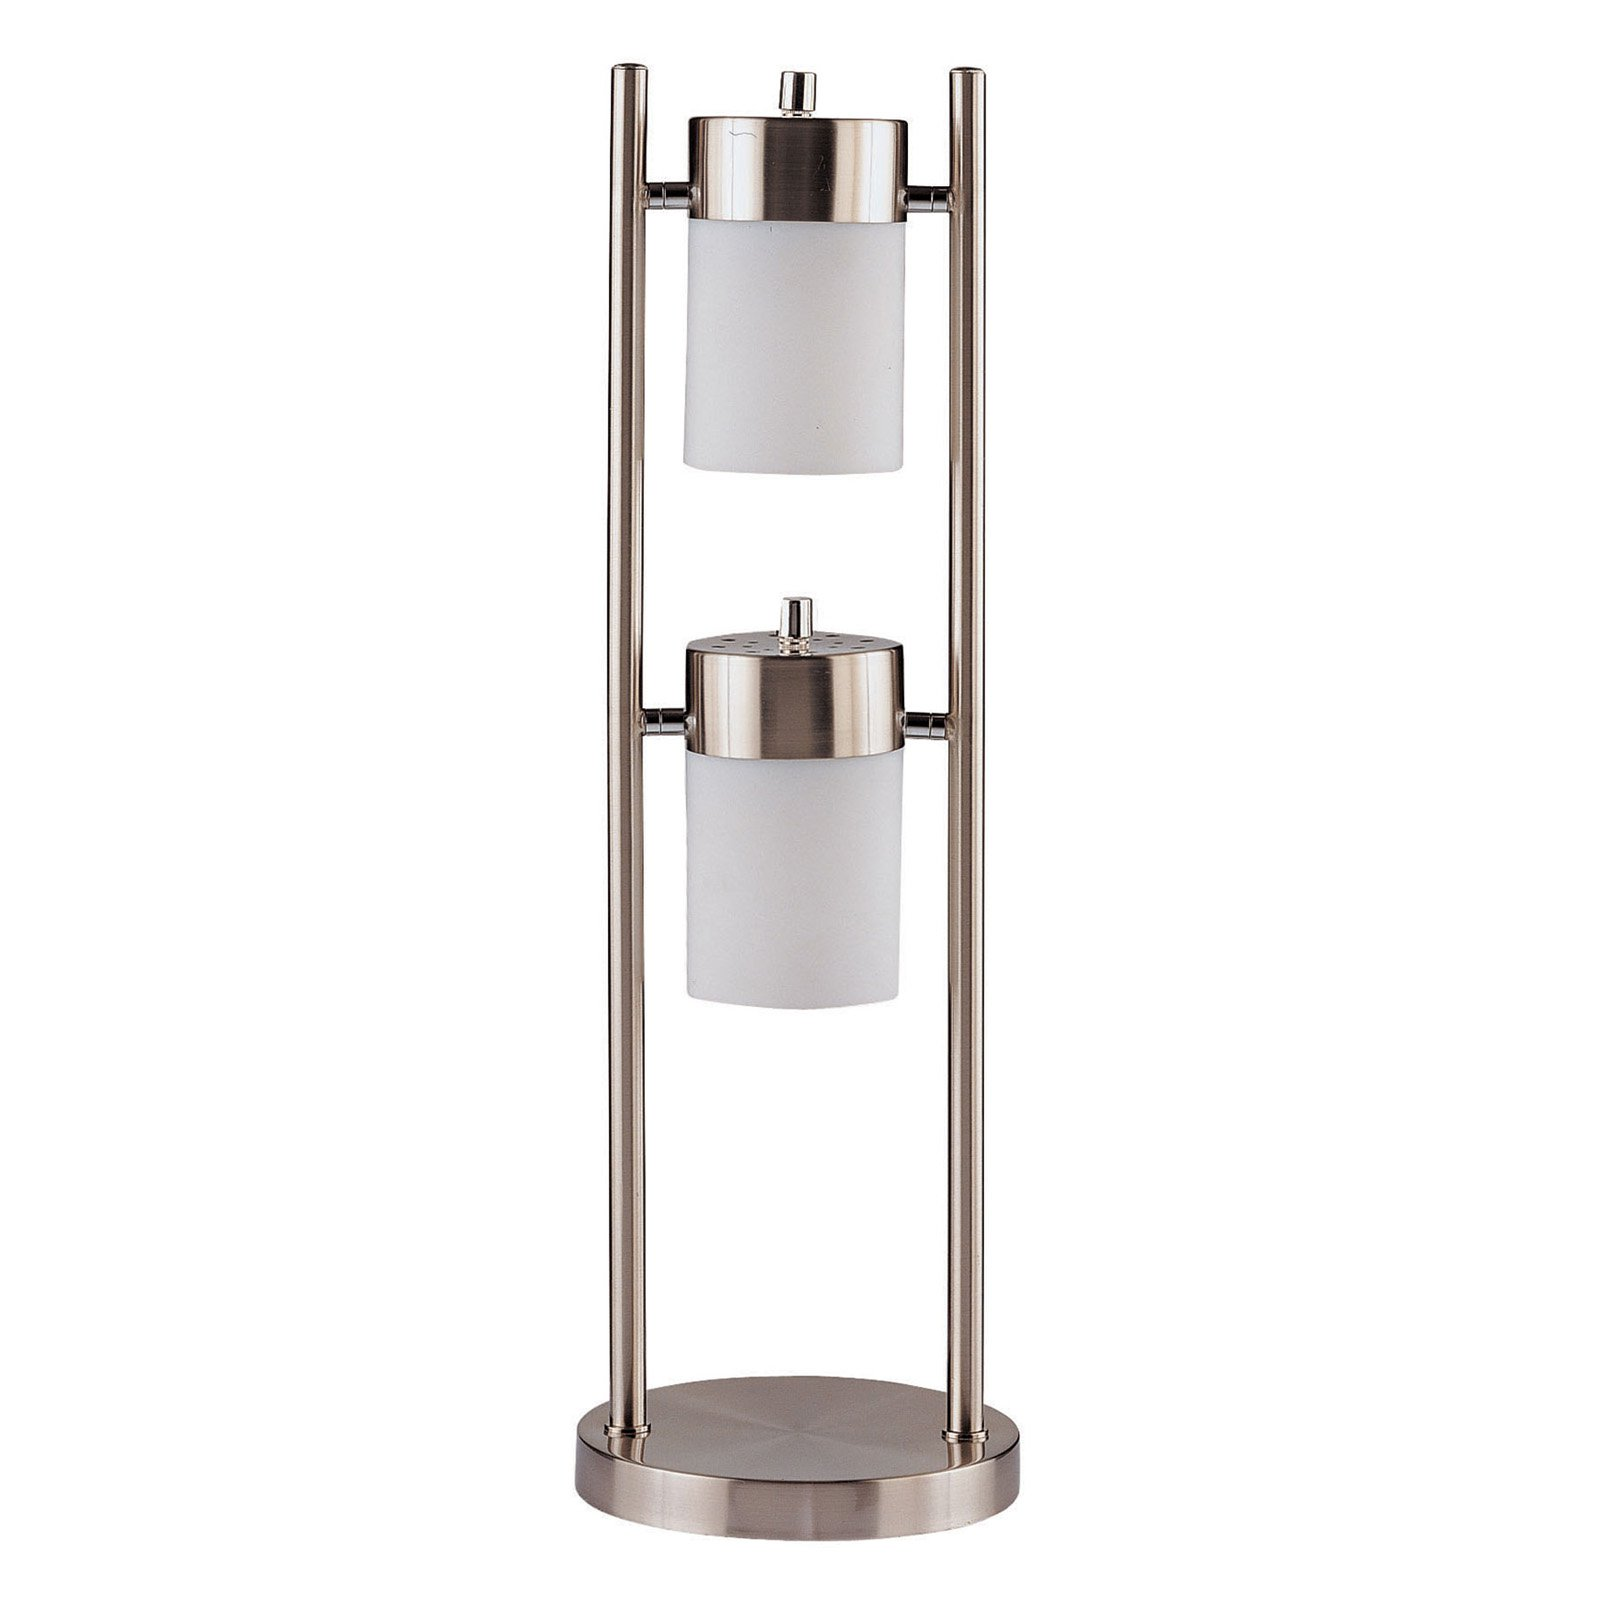 Coaster Company Of America 900732 Table Lamp In 2019